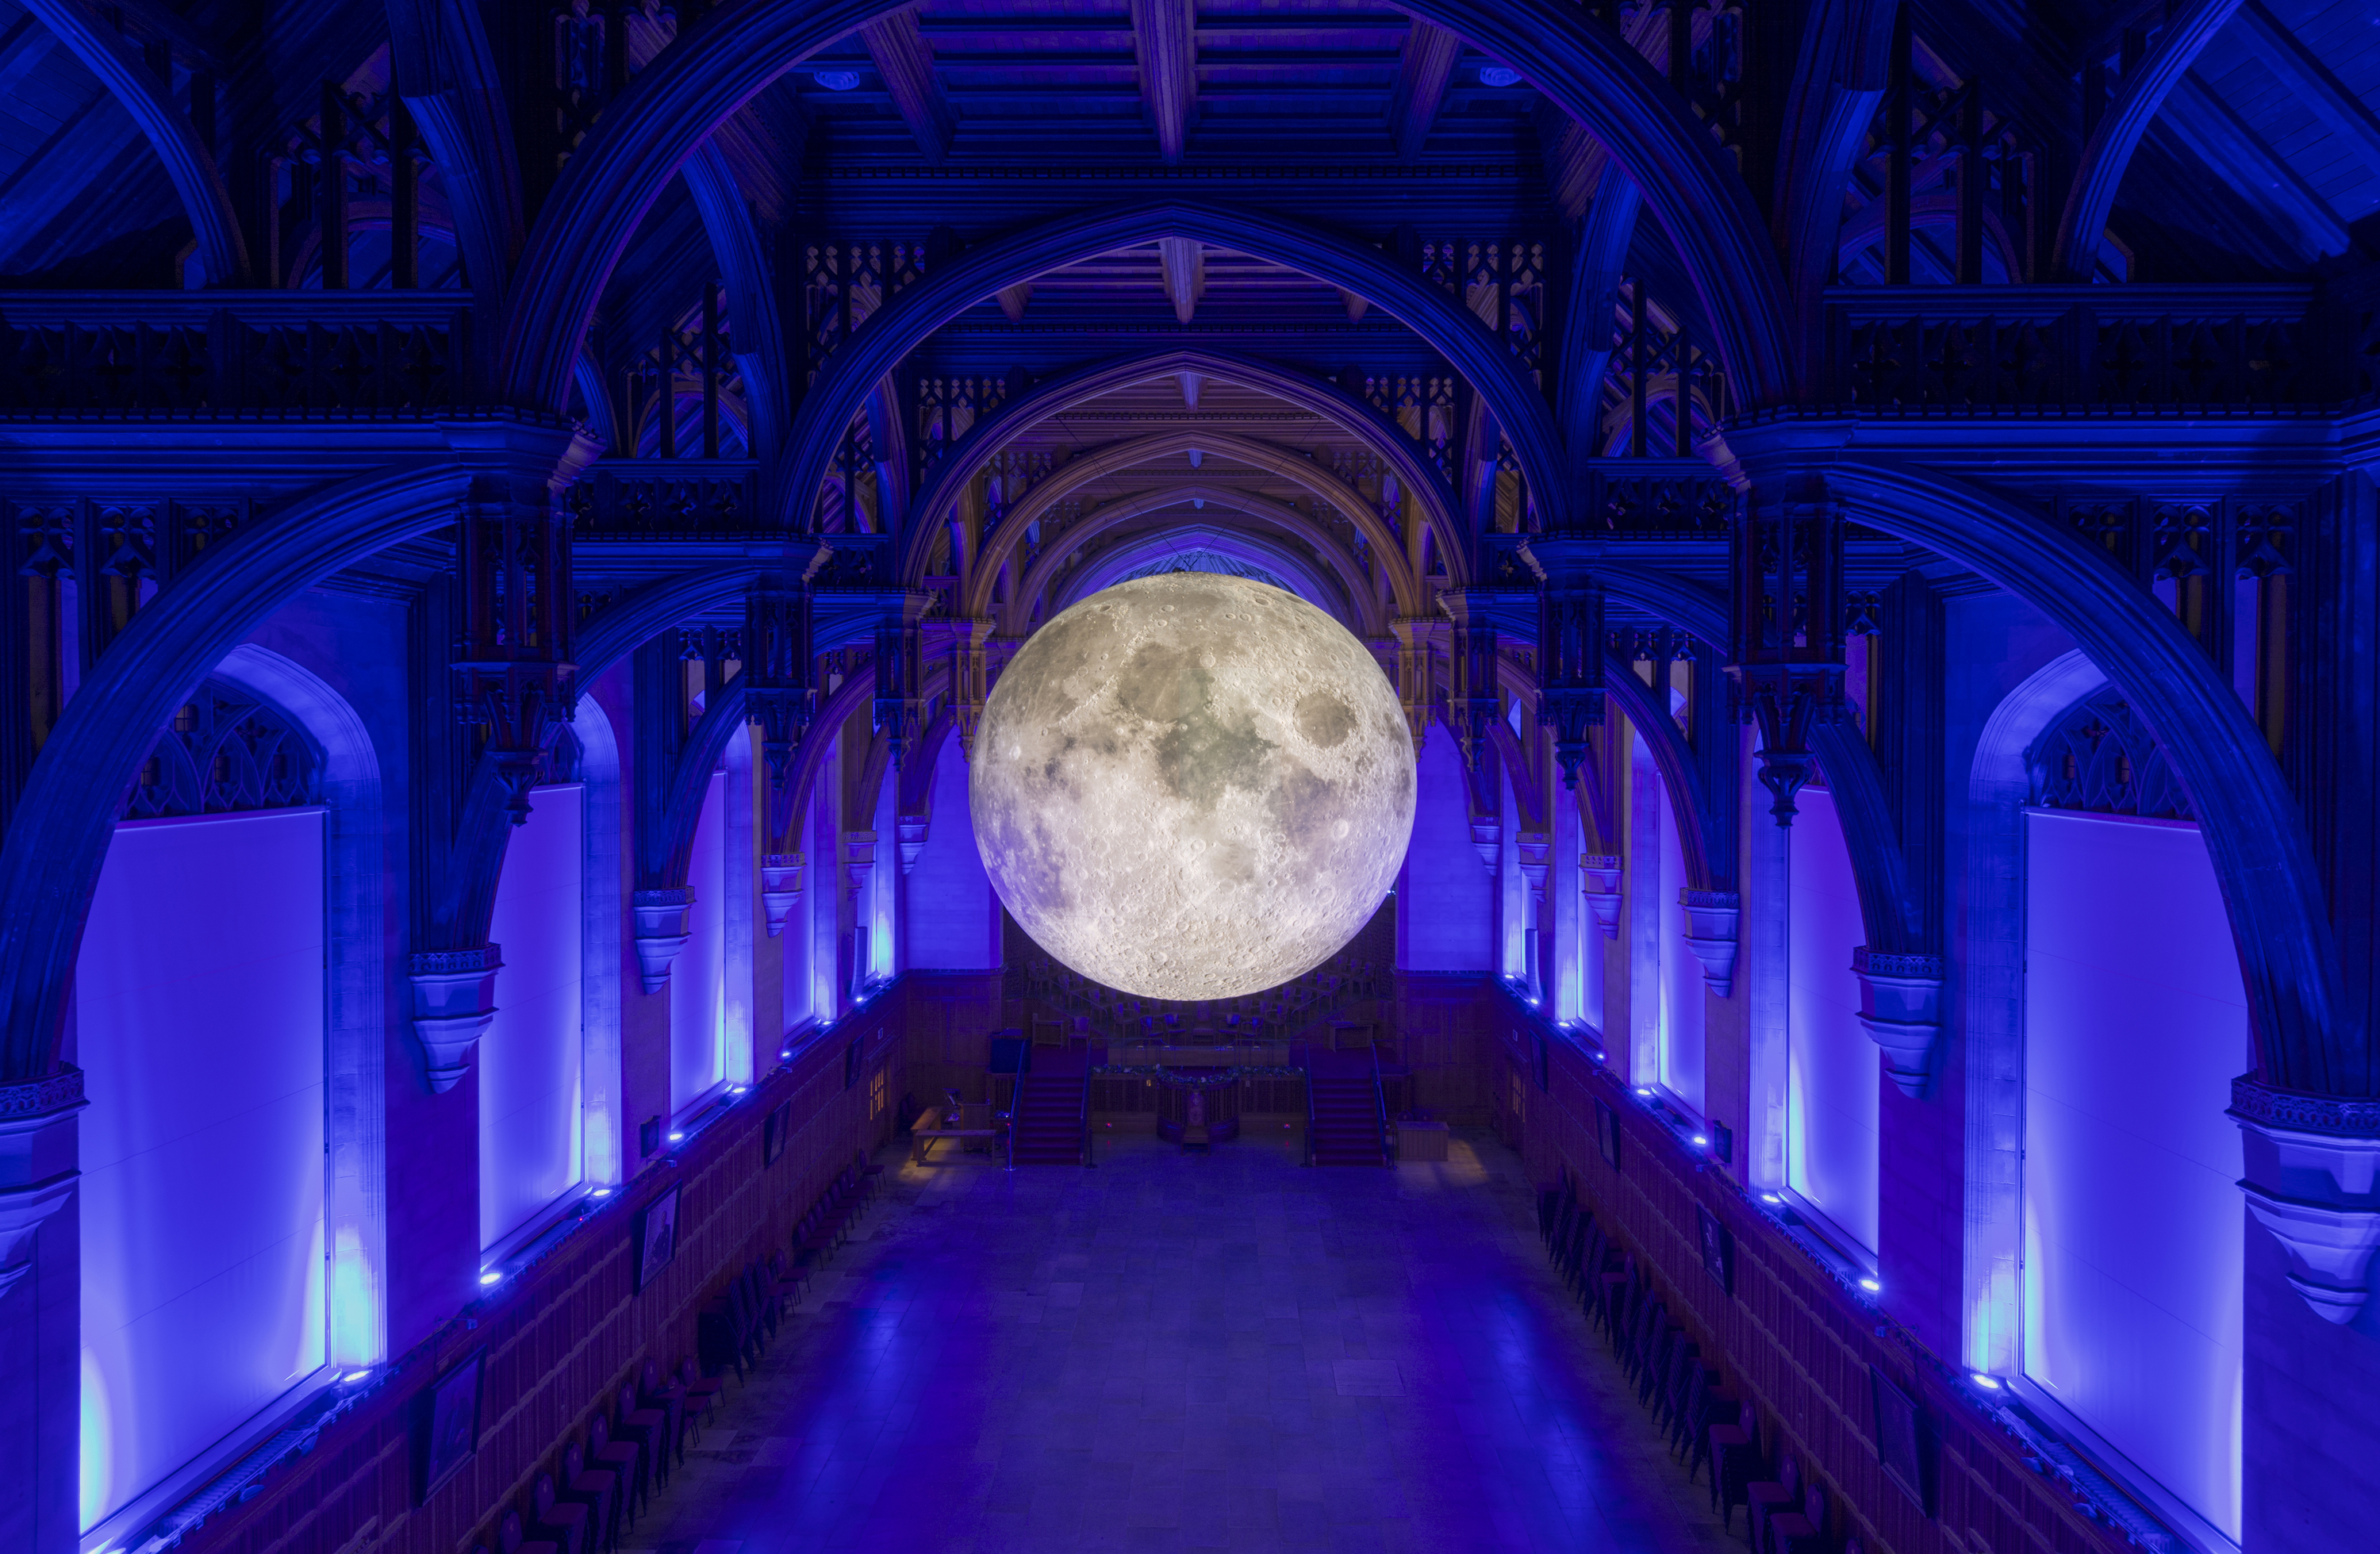 You can do yoga under a giant indoor moon at the Natural History Museum this summer